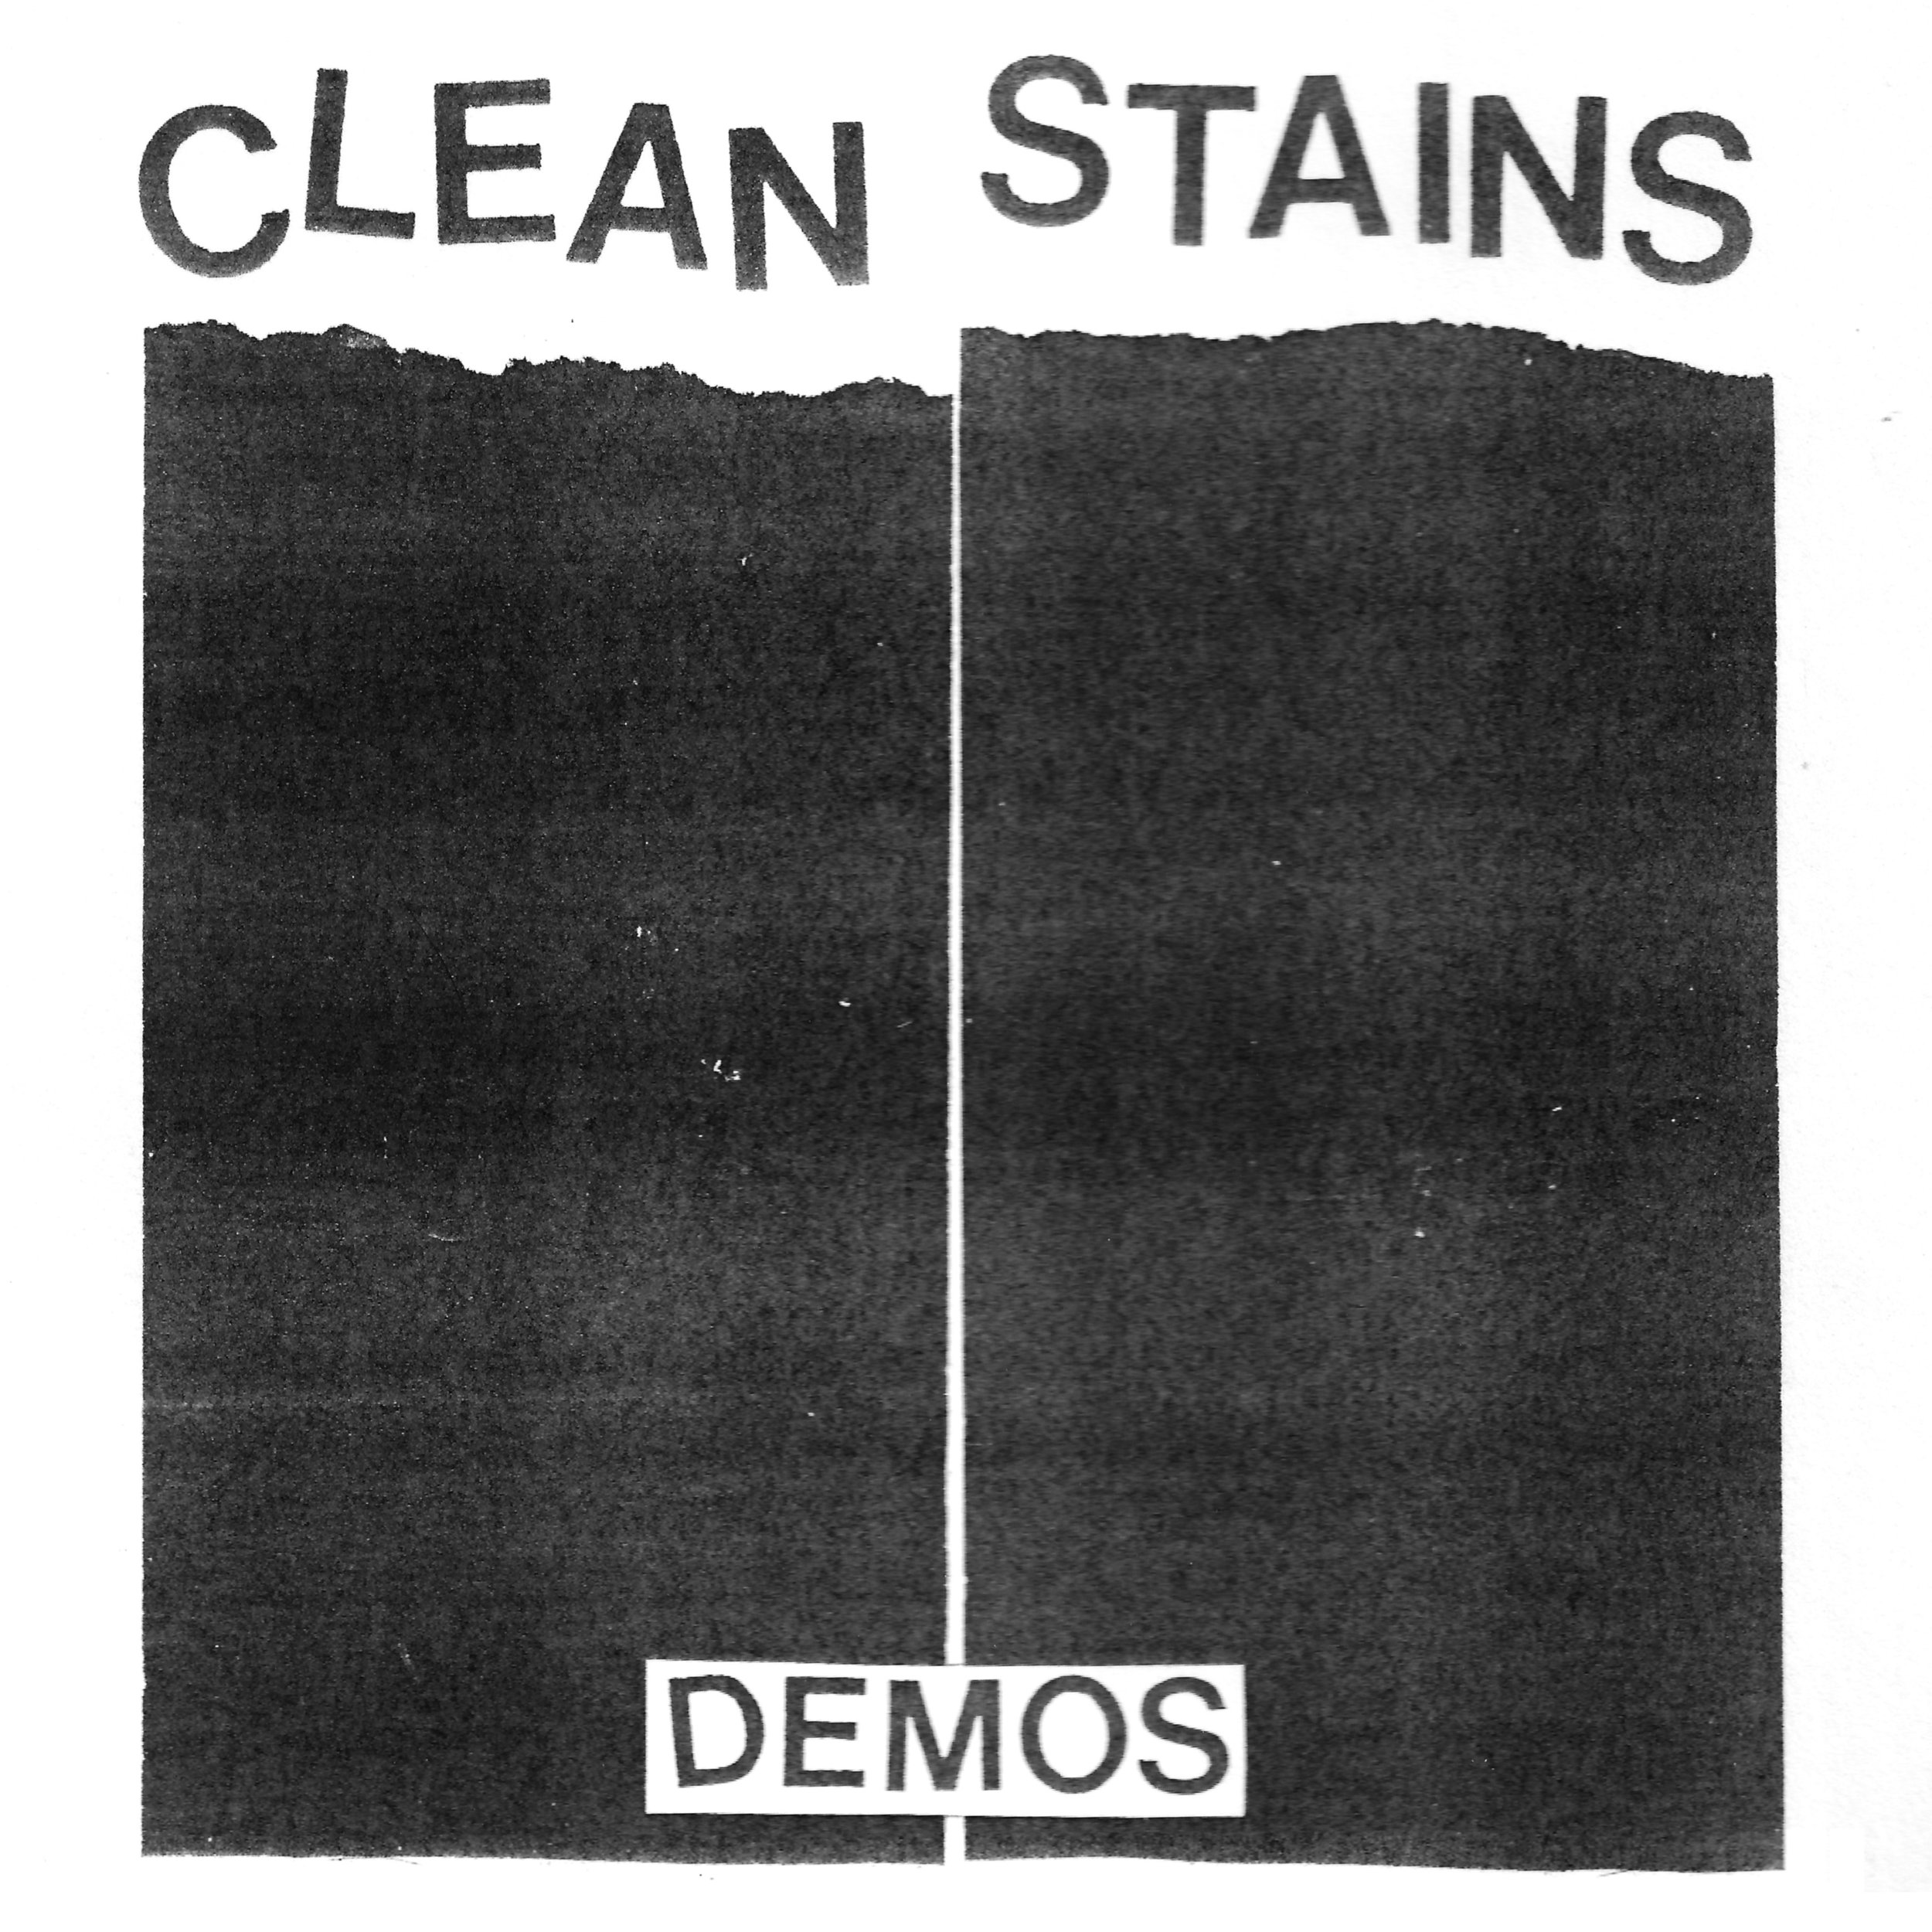 Clean Stains Demos Cover Streaming.jpg